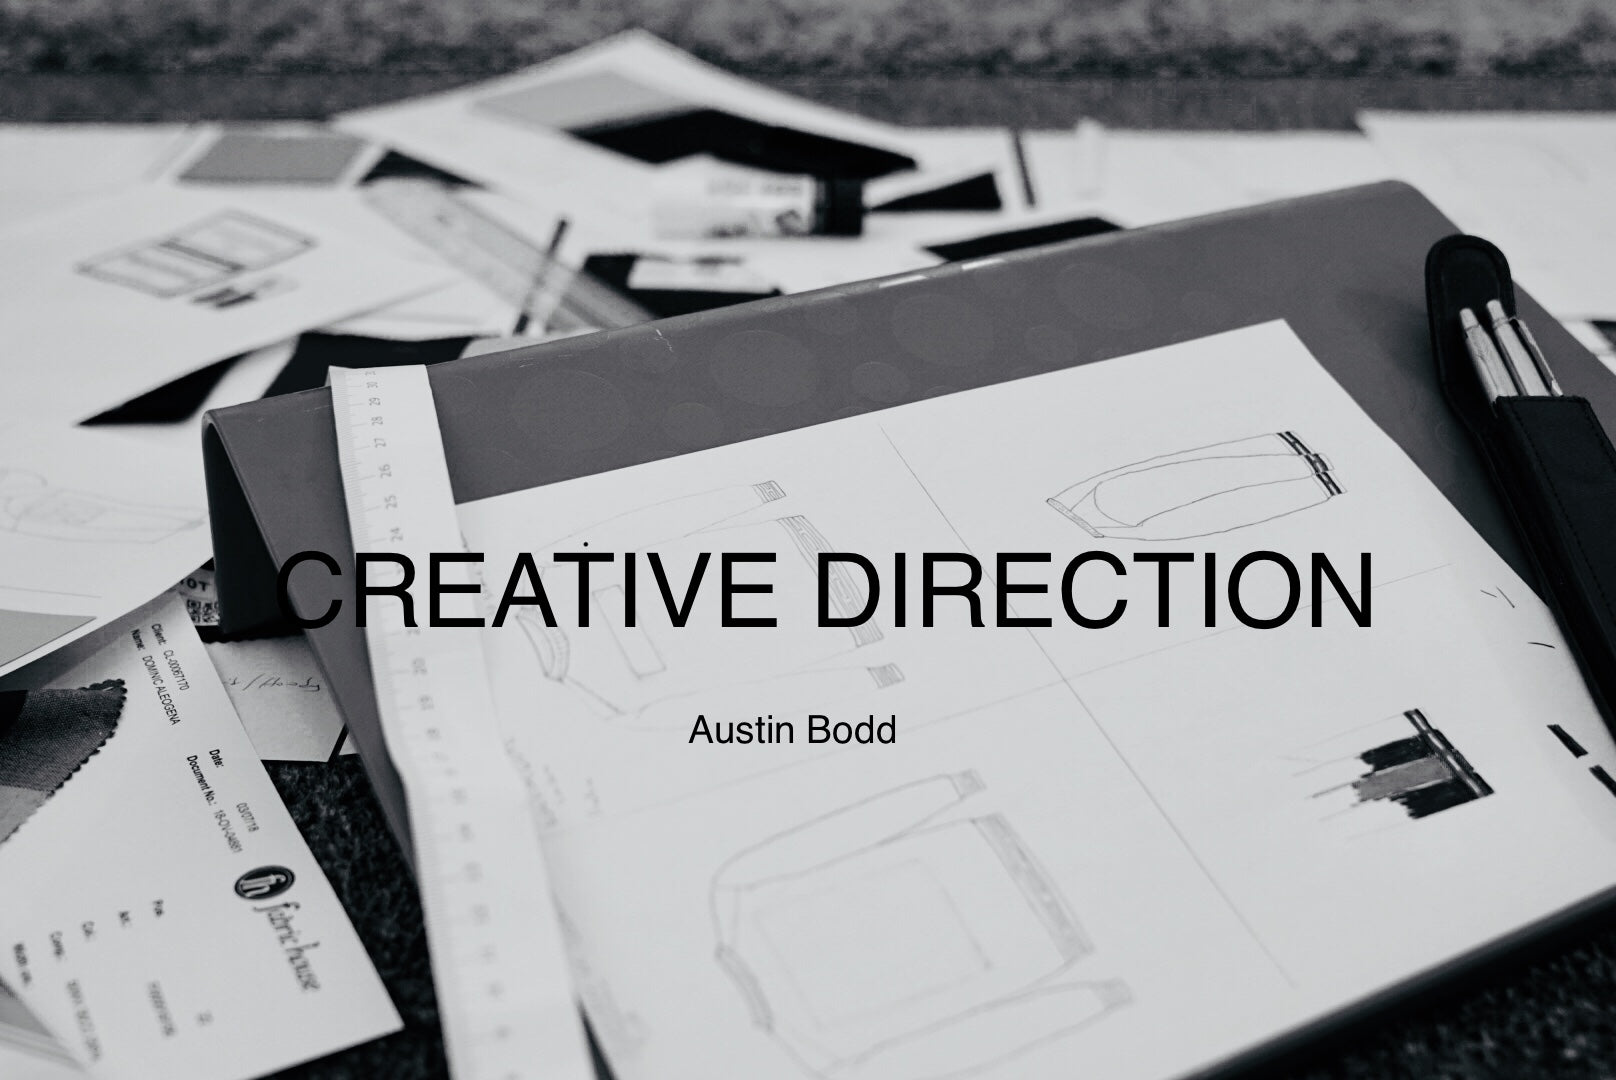 The Austin Bodd creative direction